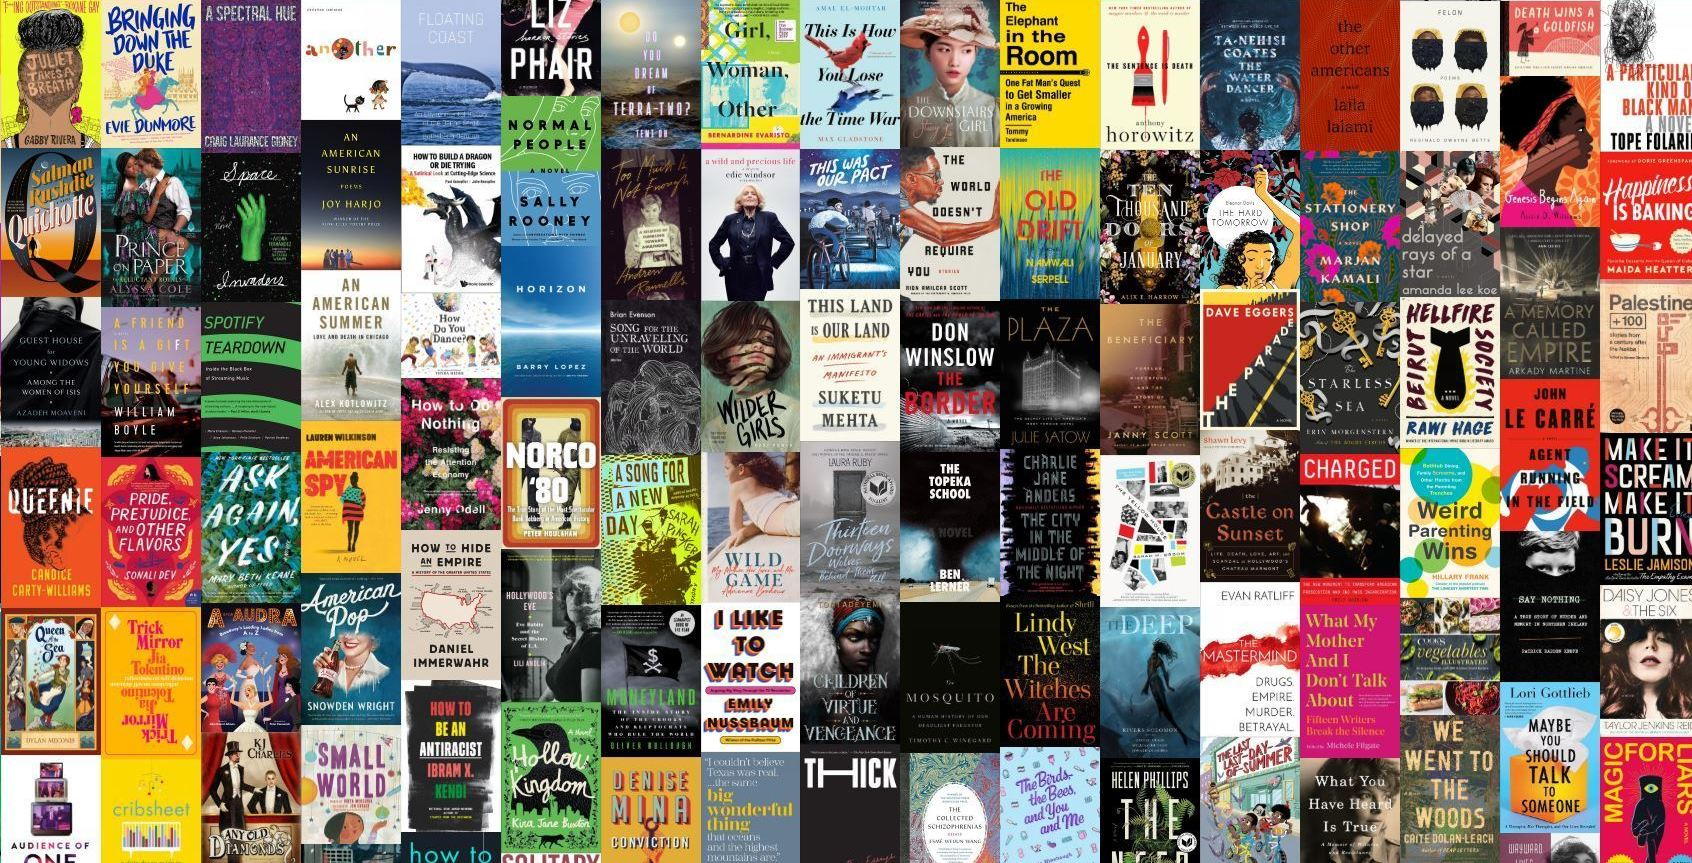 Maureen Corrigan's Favorite Books Of 2019: Here Are 10 Unputdownable Reads